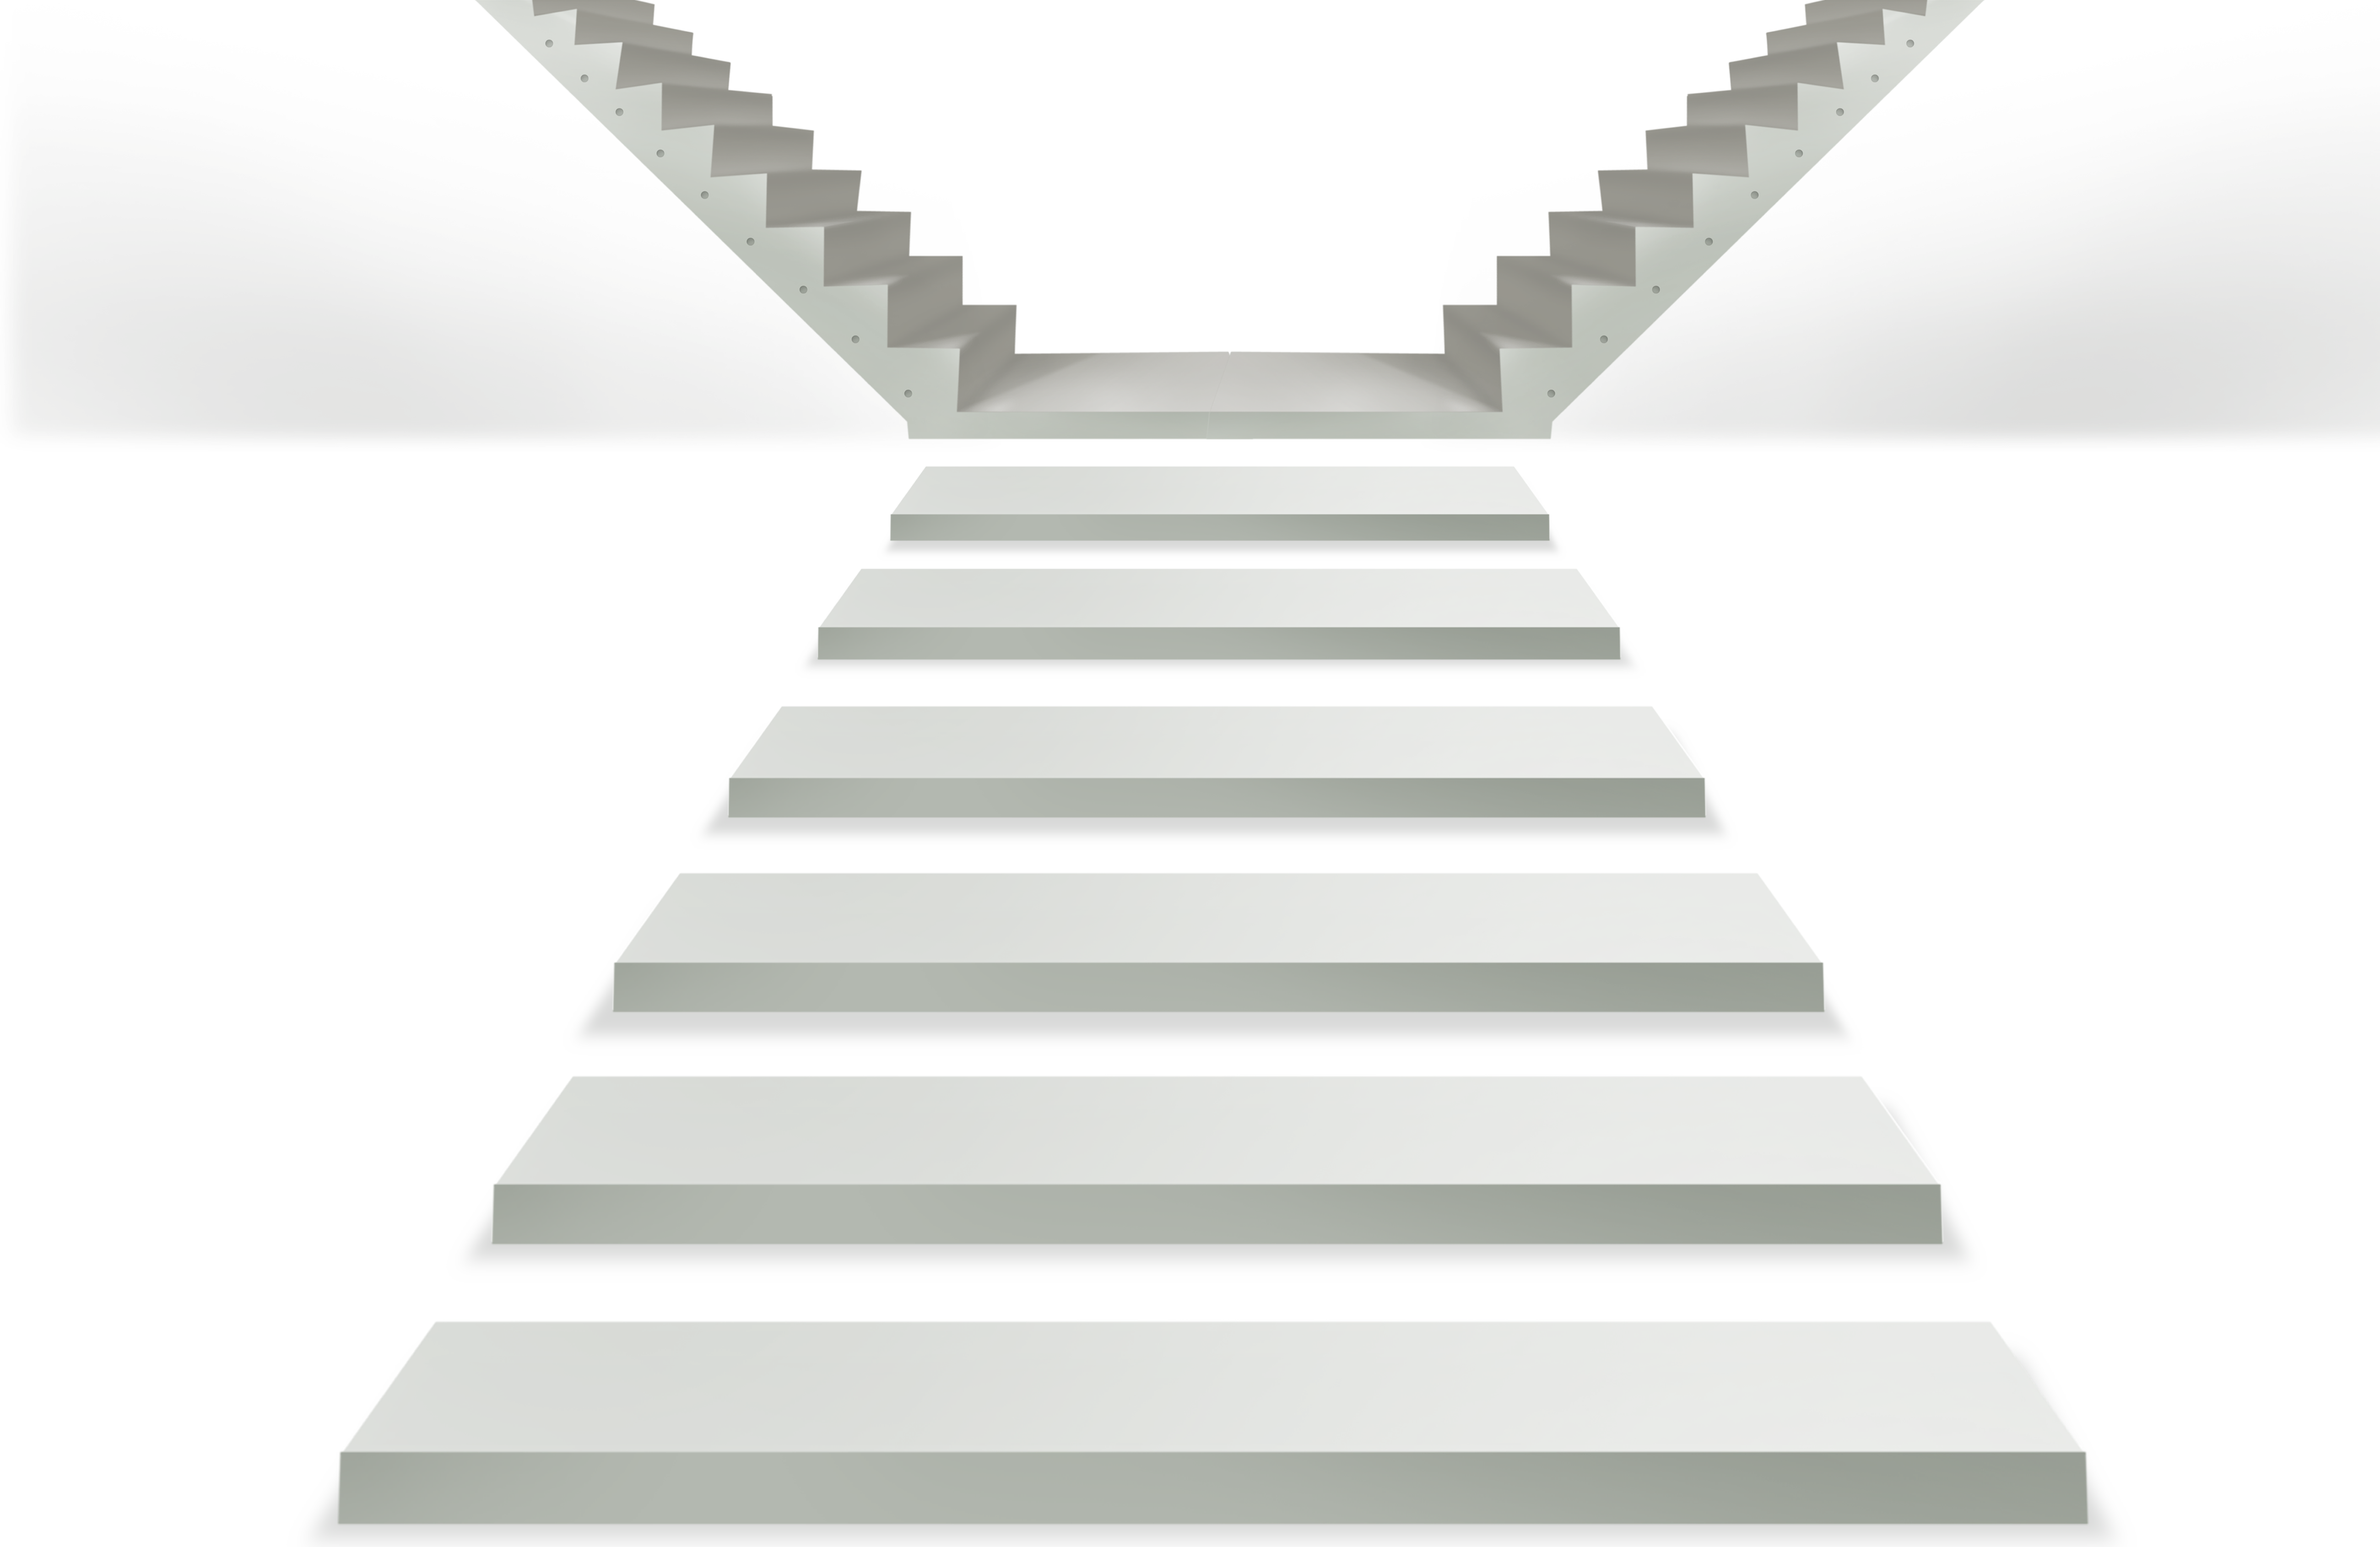 Staircase vector success stair. Stairs ladder of image